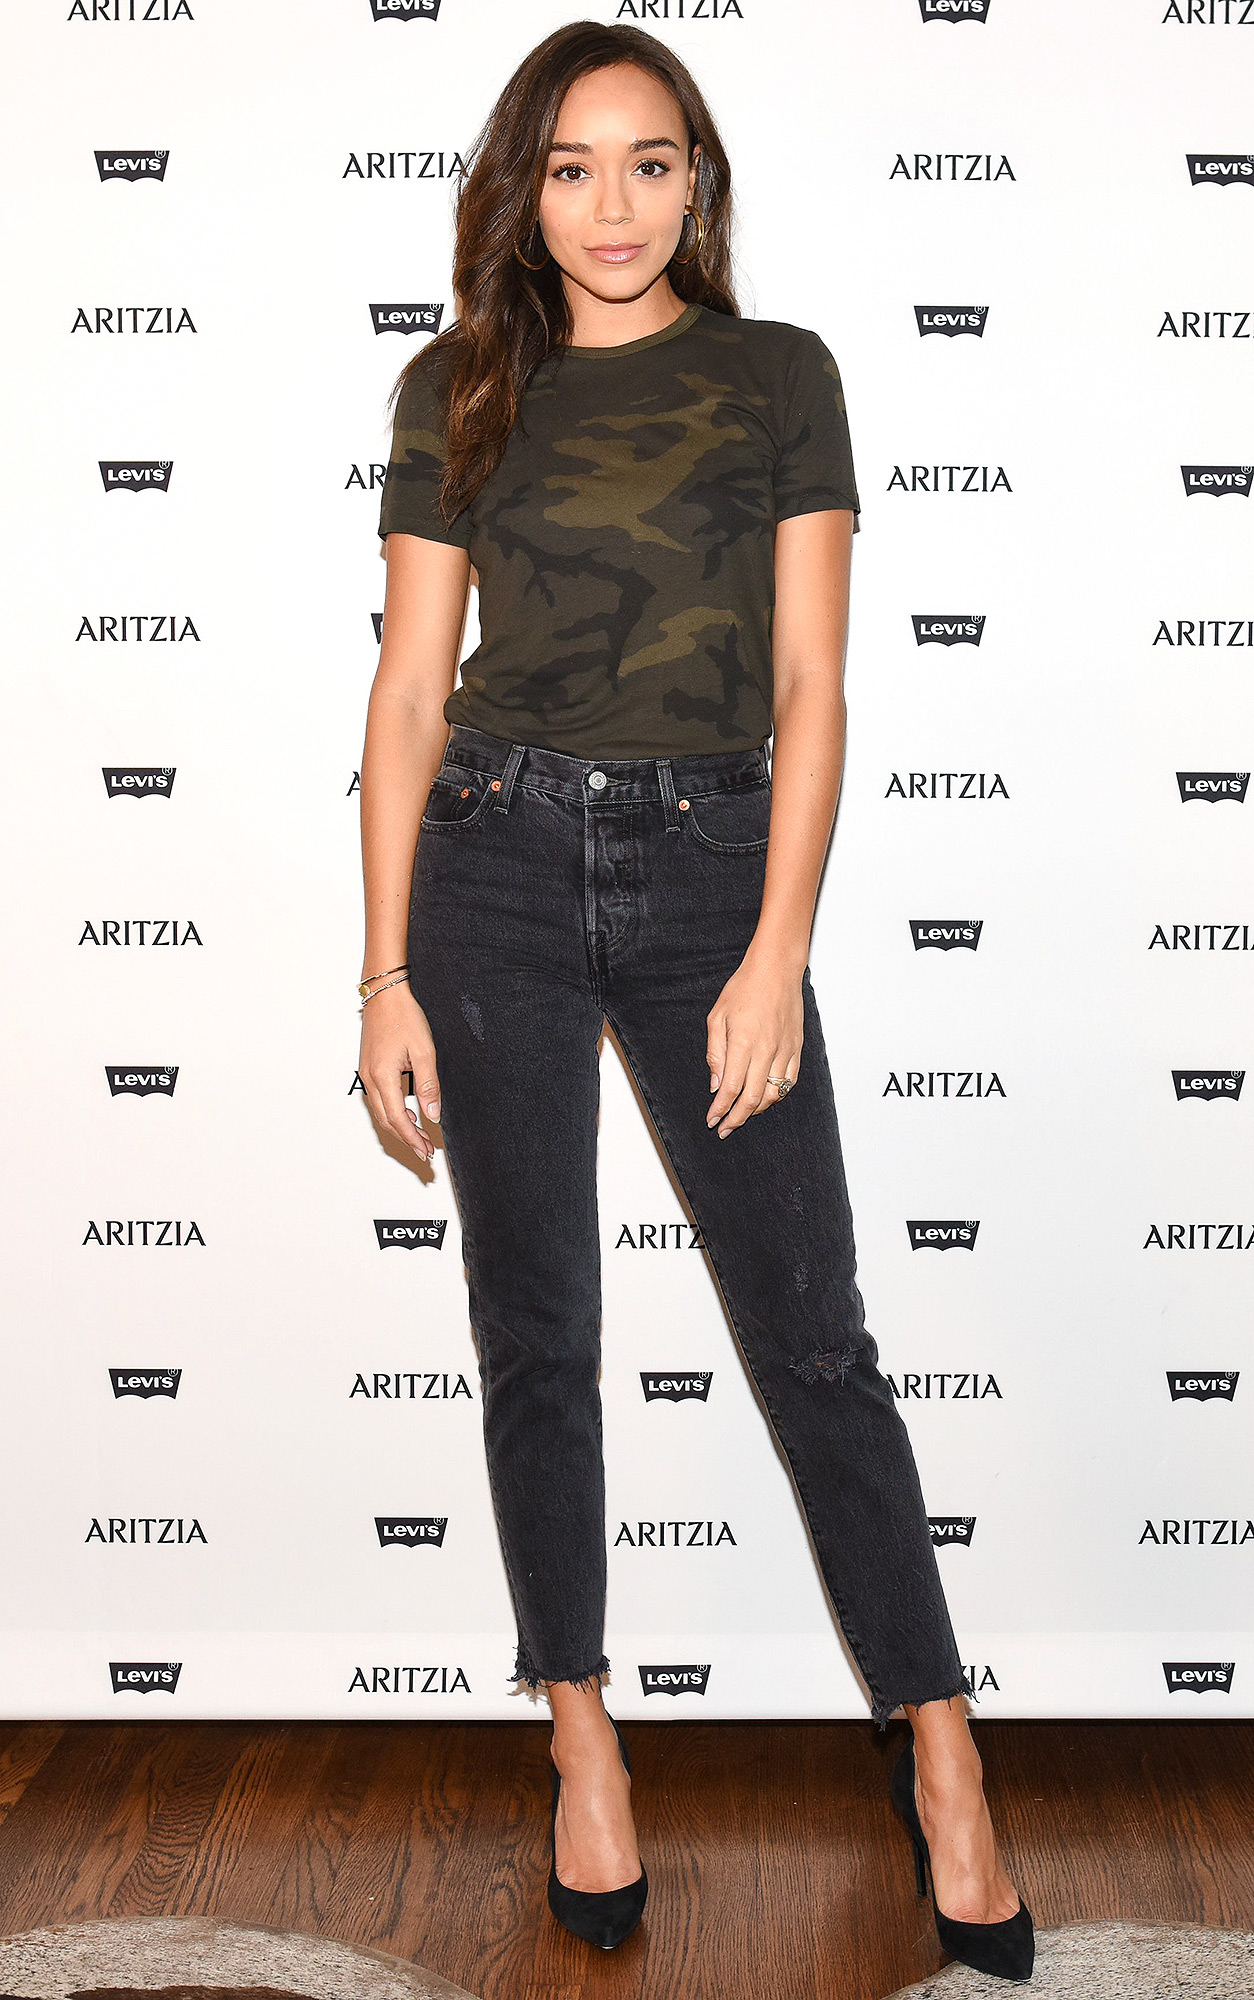 Levi's by Aritzia Collection launch, Los Angeles, USA - 16 Nov 2017